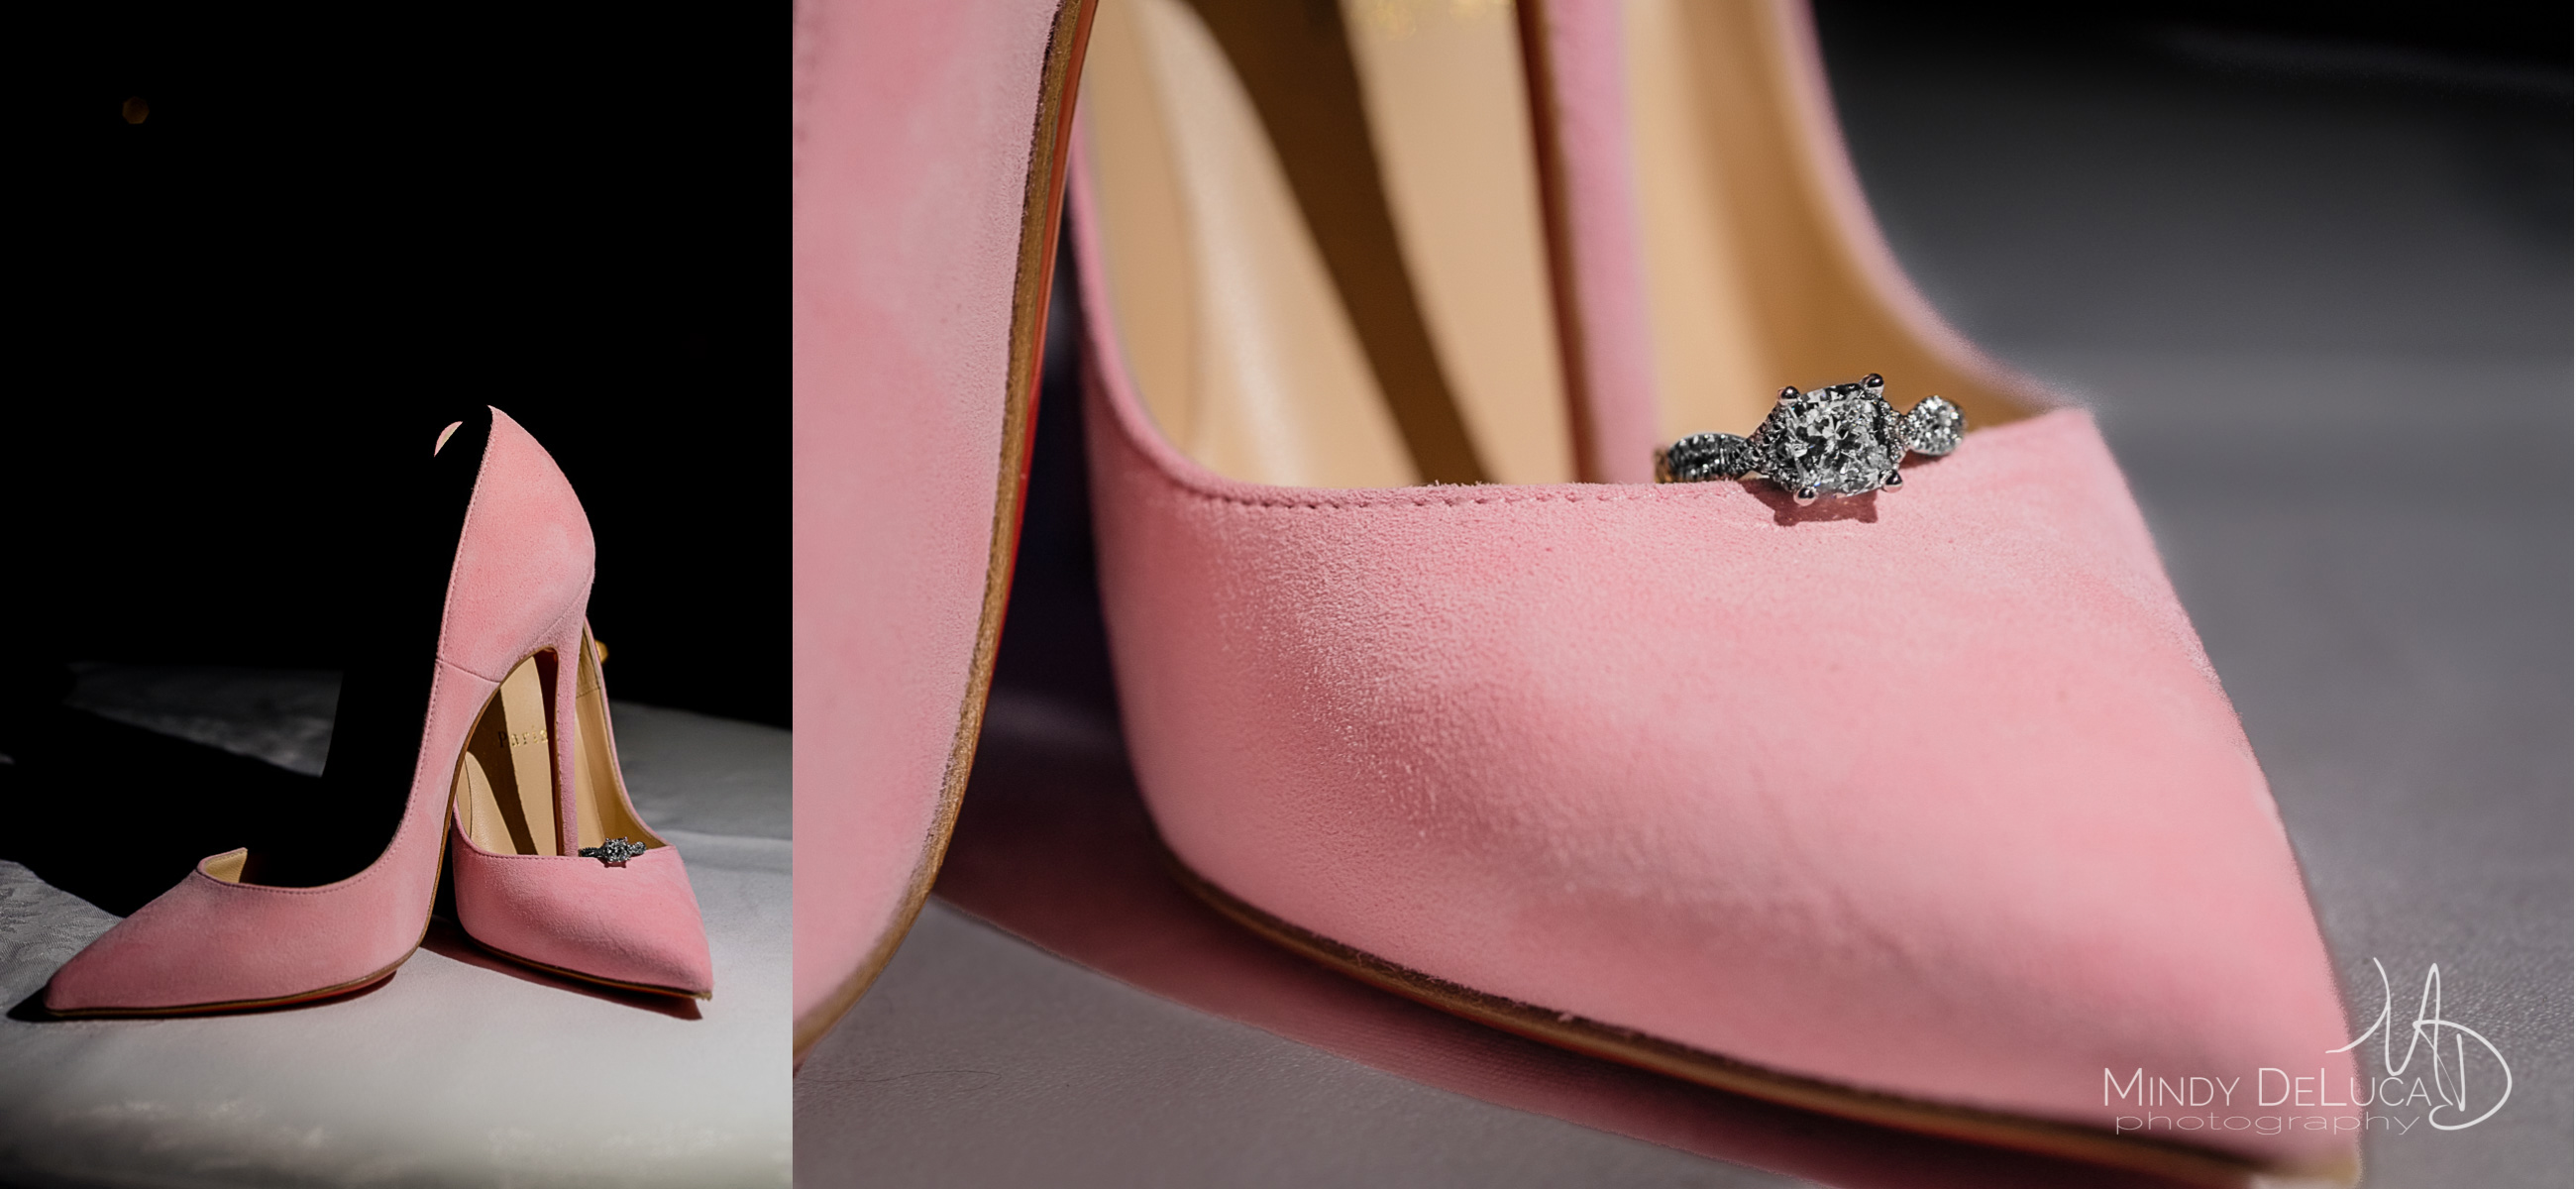 Pink Louboutin Heels Engagement Ring